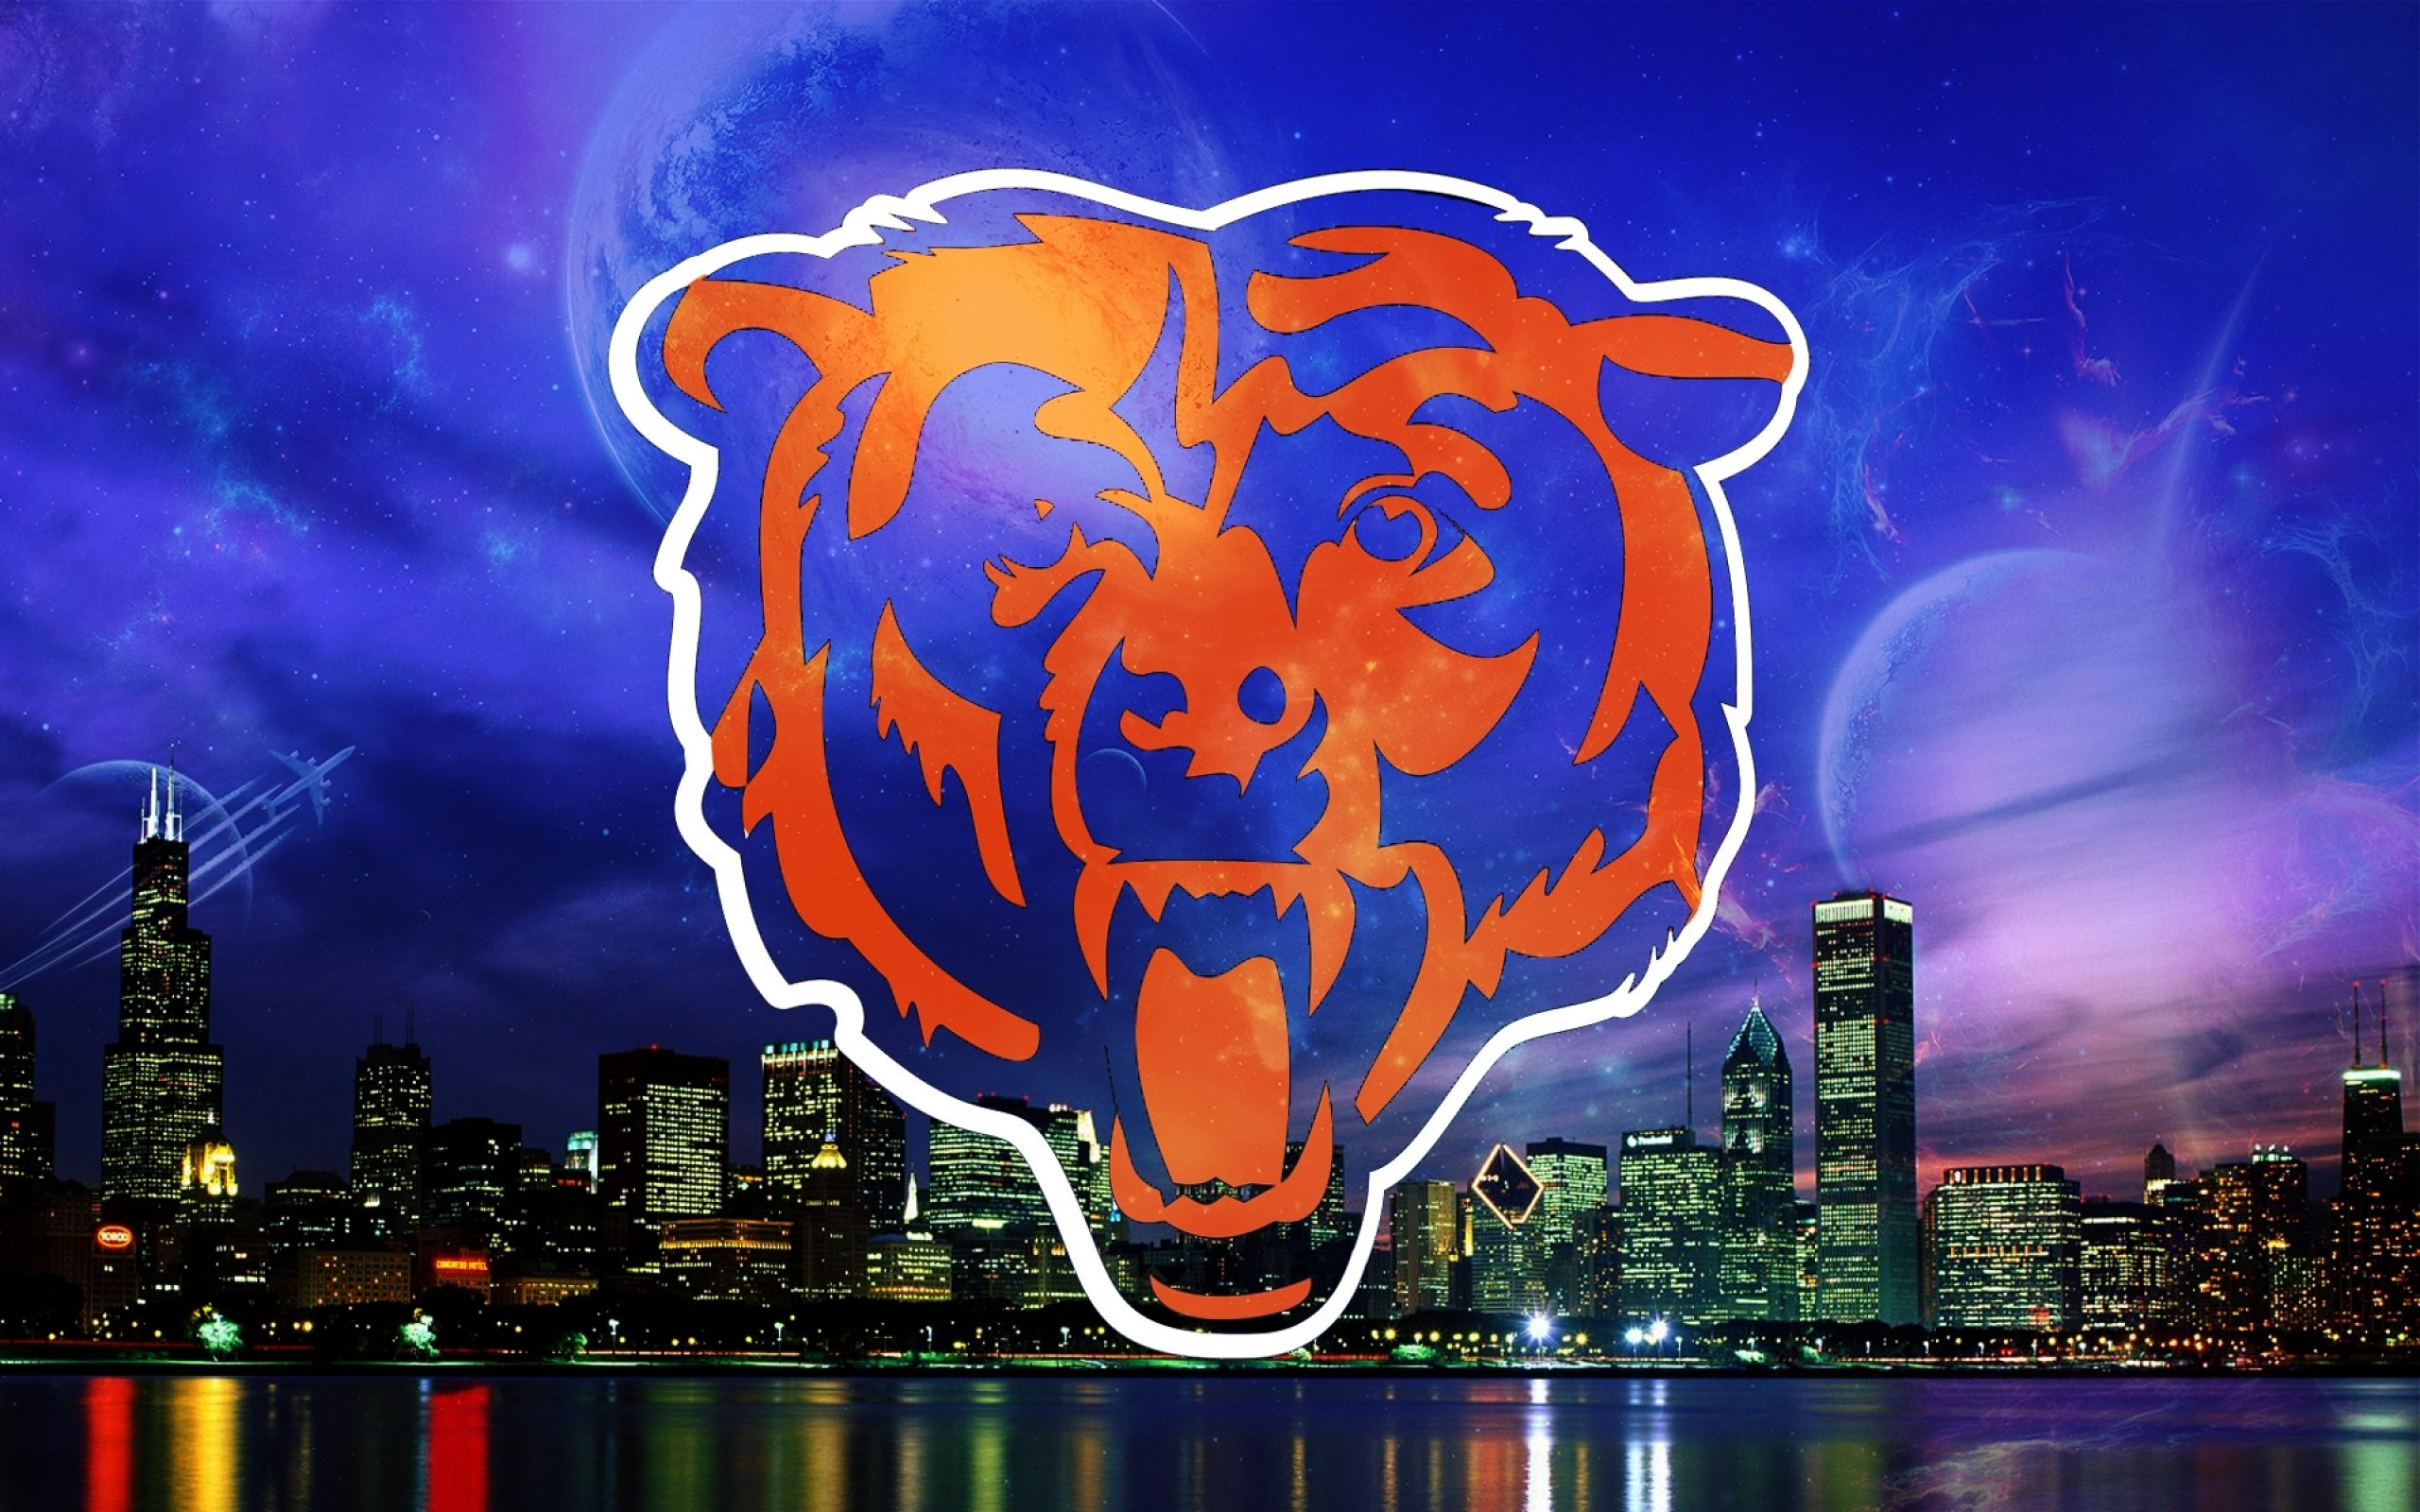 wallpaperwiki Pictures HD Chicago Bears Wallpaper PIC 2560x1600